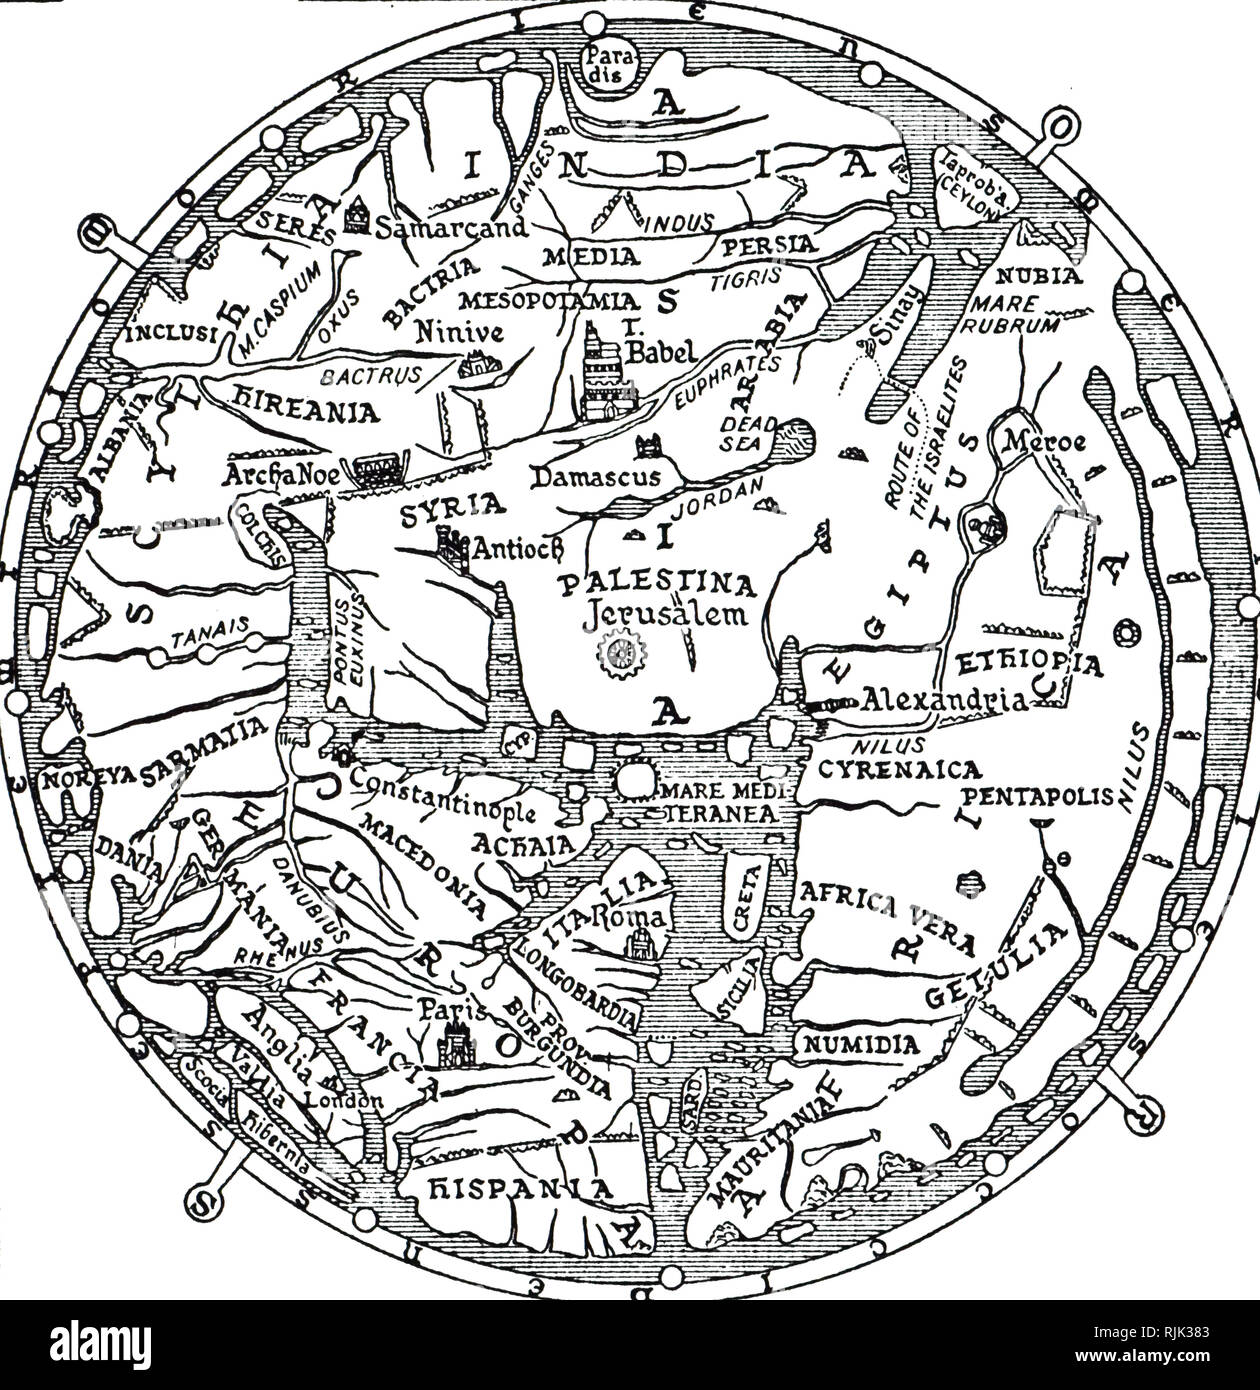 An engraving depicting the central section of the Hereford Mappa Mundi, a medieval map of the known world. Dated 14th century - Stock Image